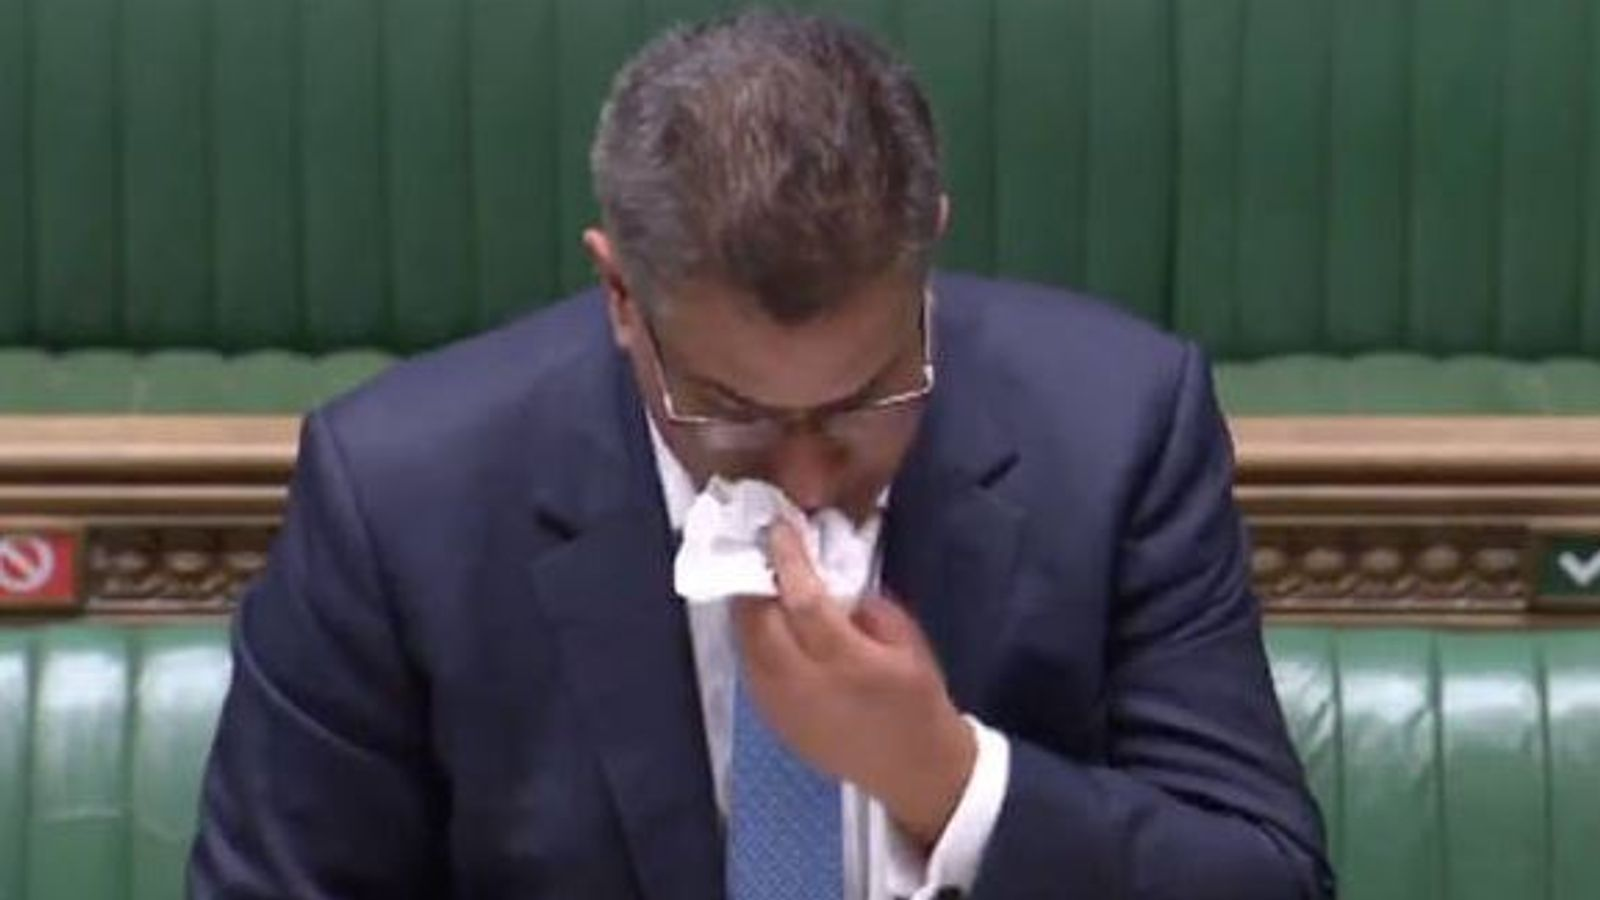 Coronavirus: Alok Sharma tested for COVID-19 after being visibly unwell in Commons